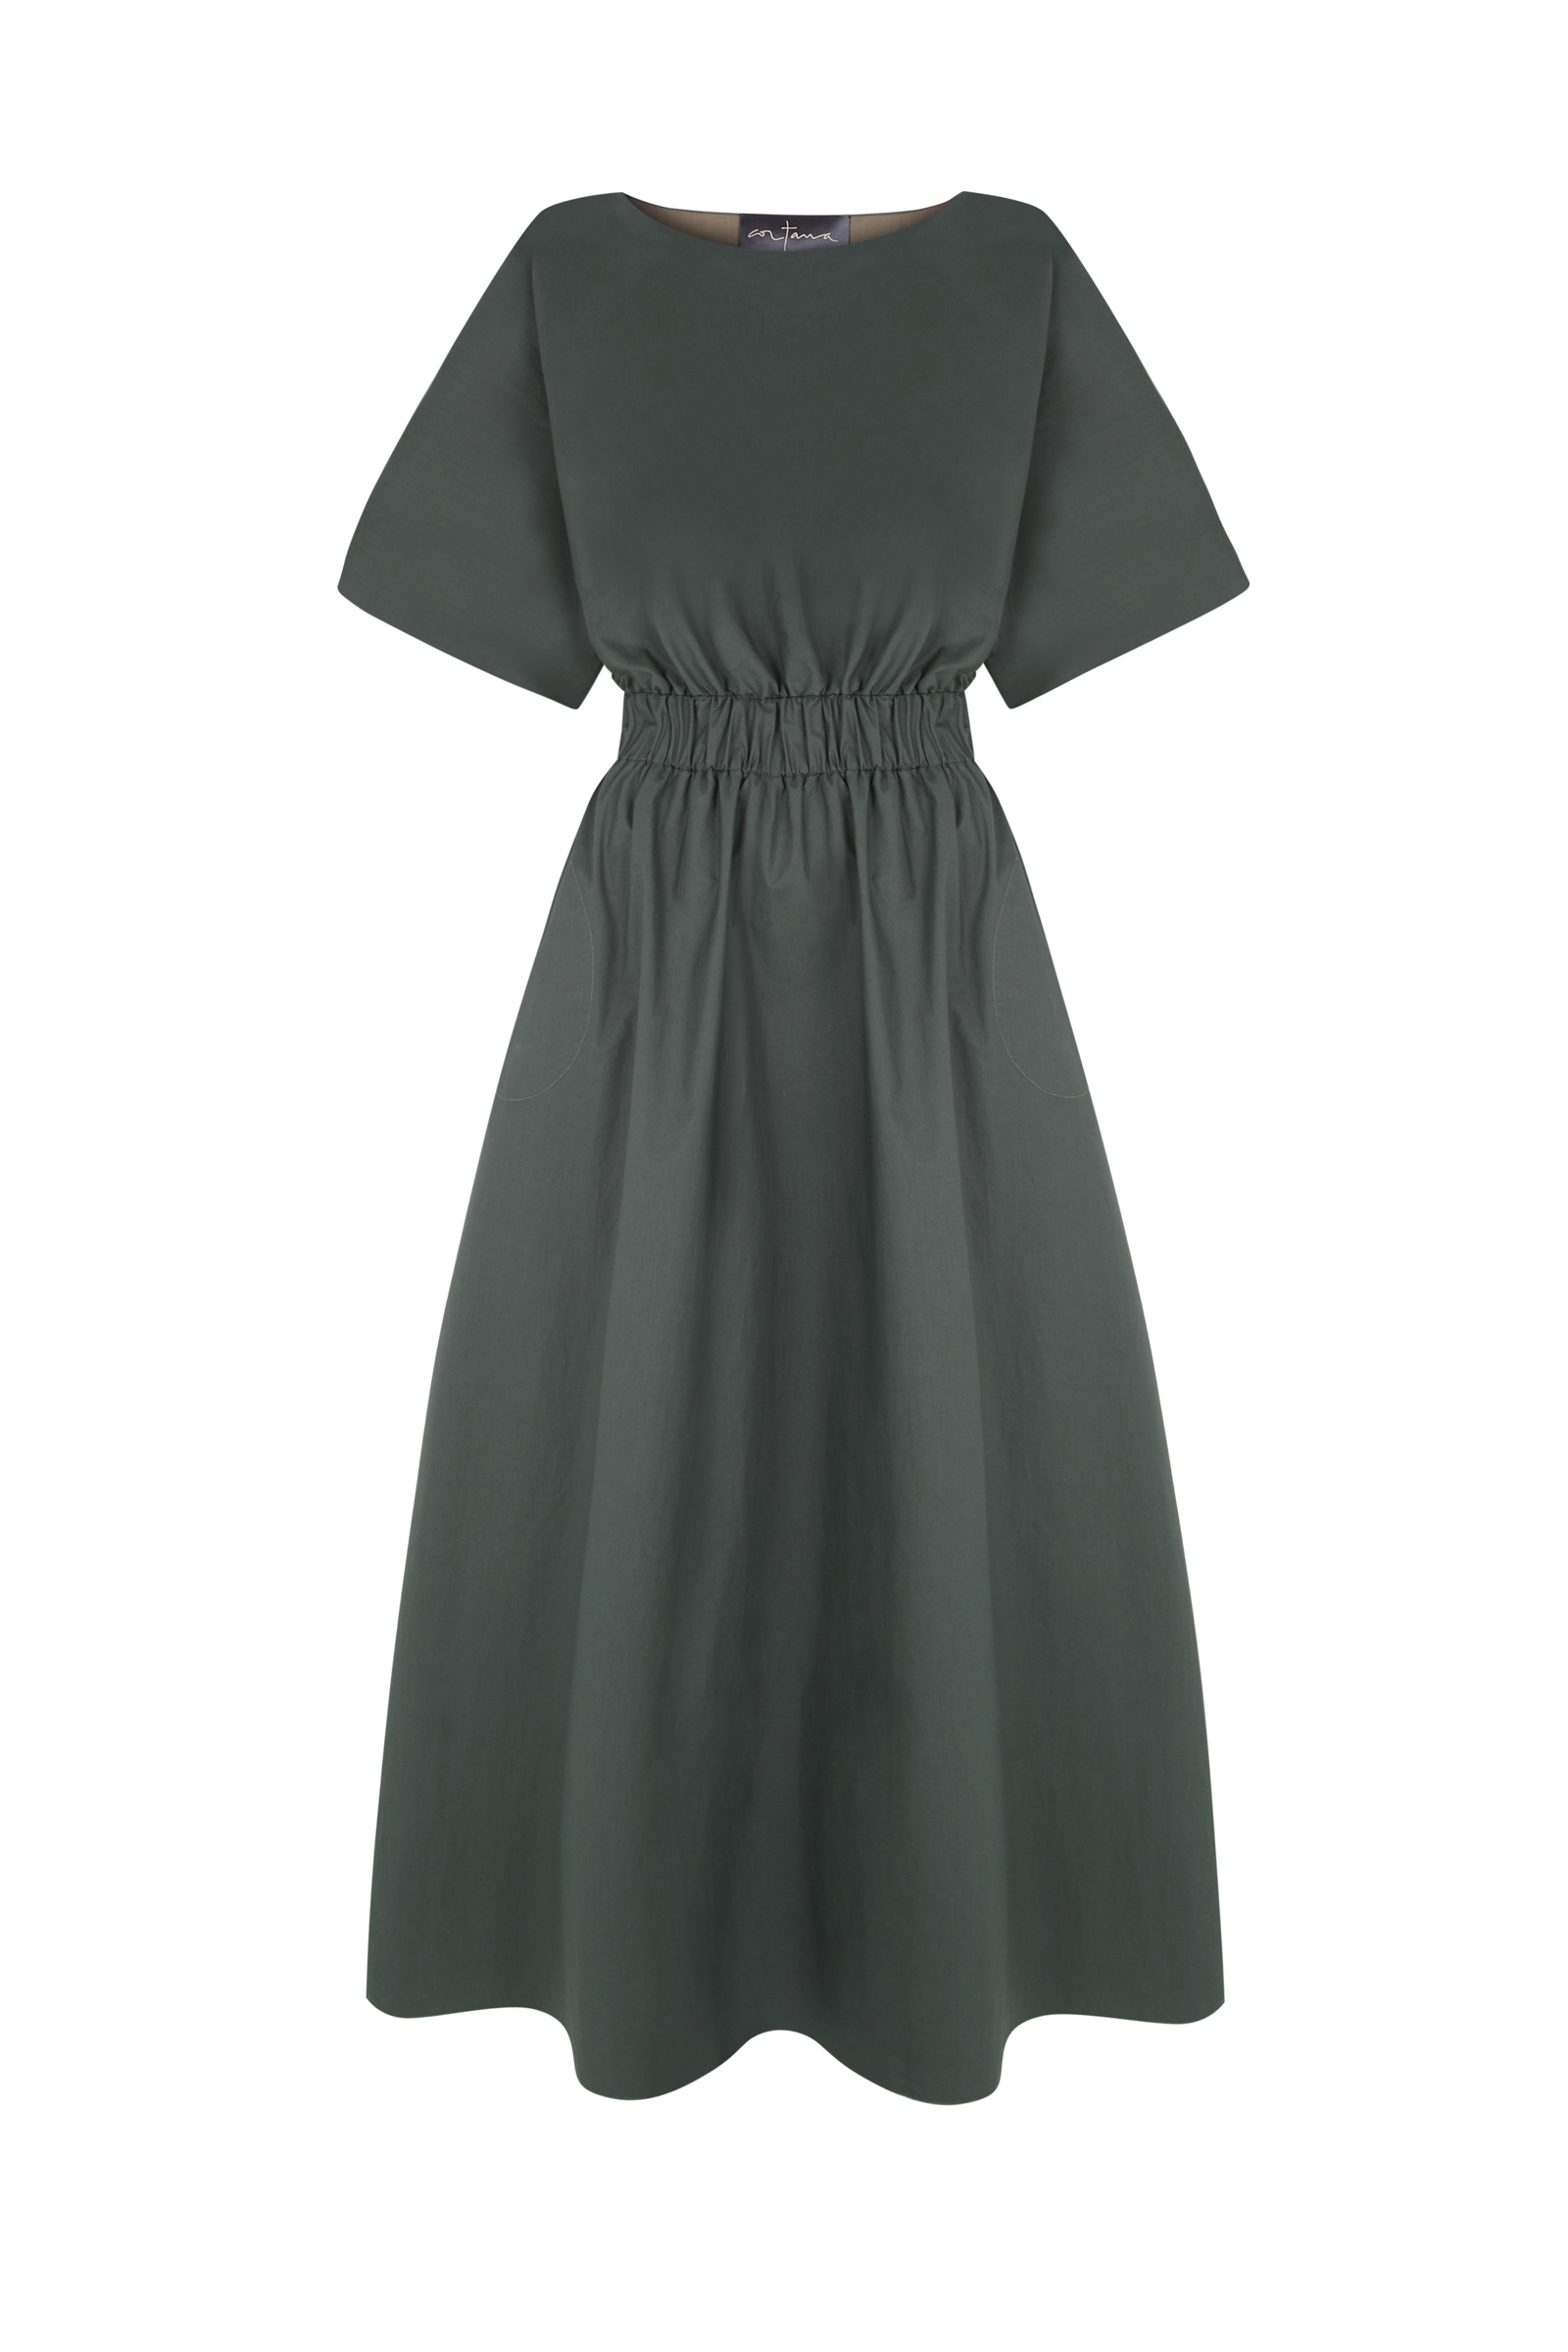 VICTORIA, GREEN COTTON DRESS - Cortana Moda